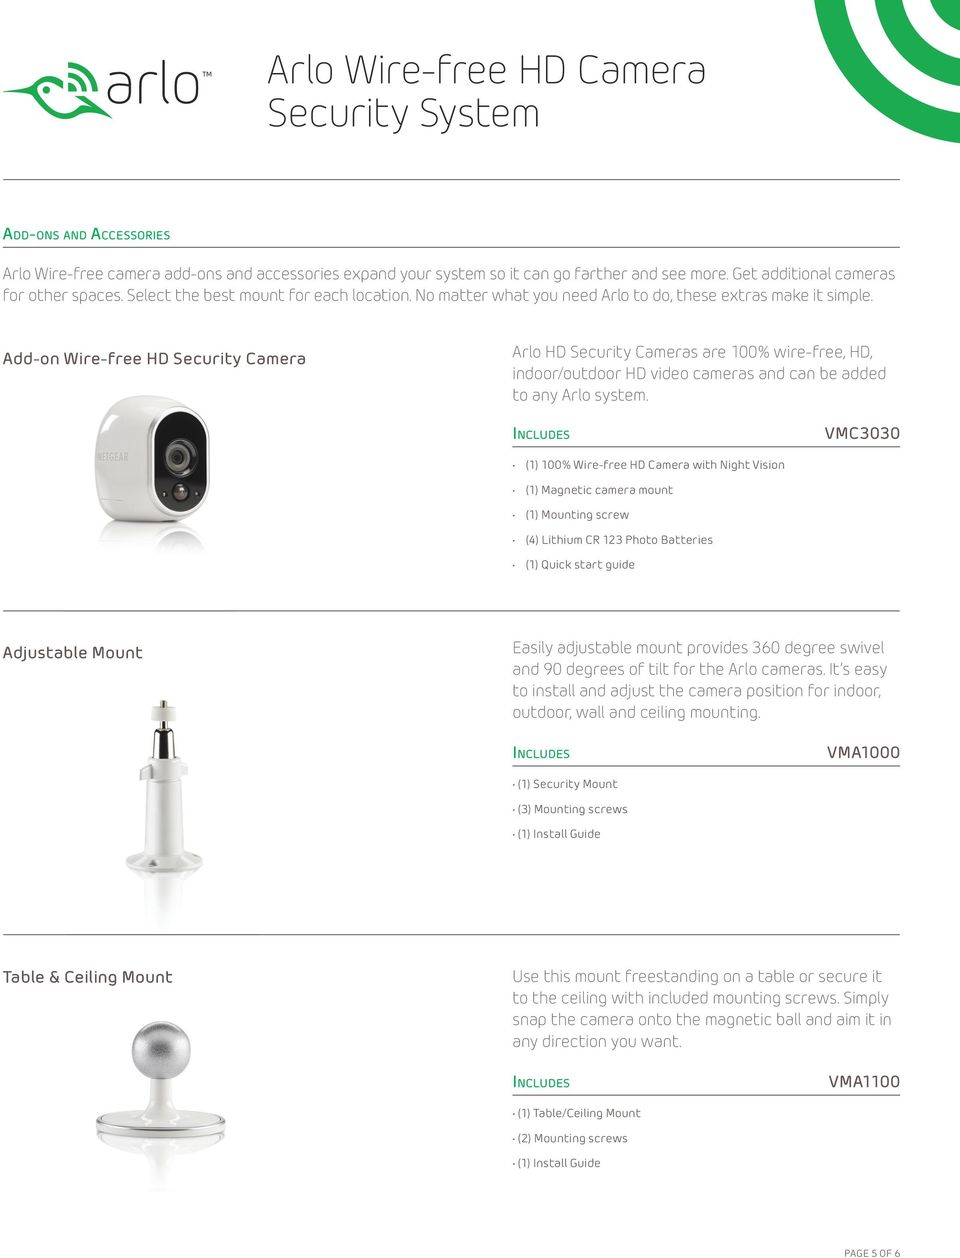 Add-on Wire-free HD Security Camera Arlo HD Security Cameras are 100% wire-free, HD, indoor/outdoor HD video cameras and can be added to any Arlo system.